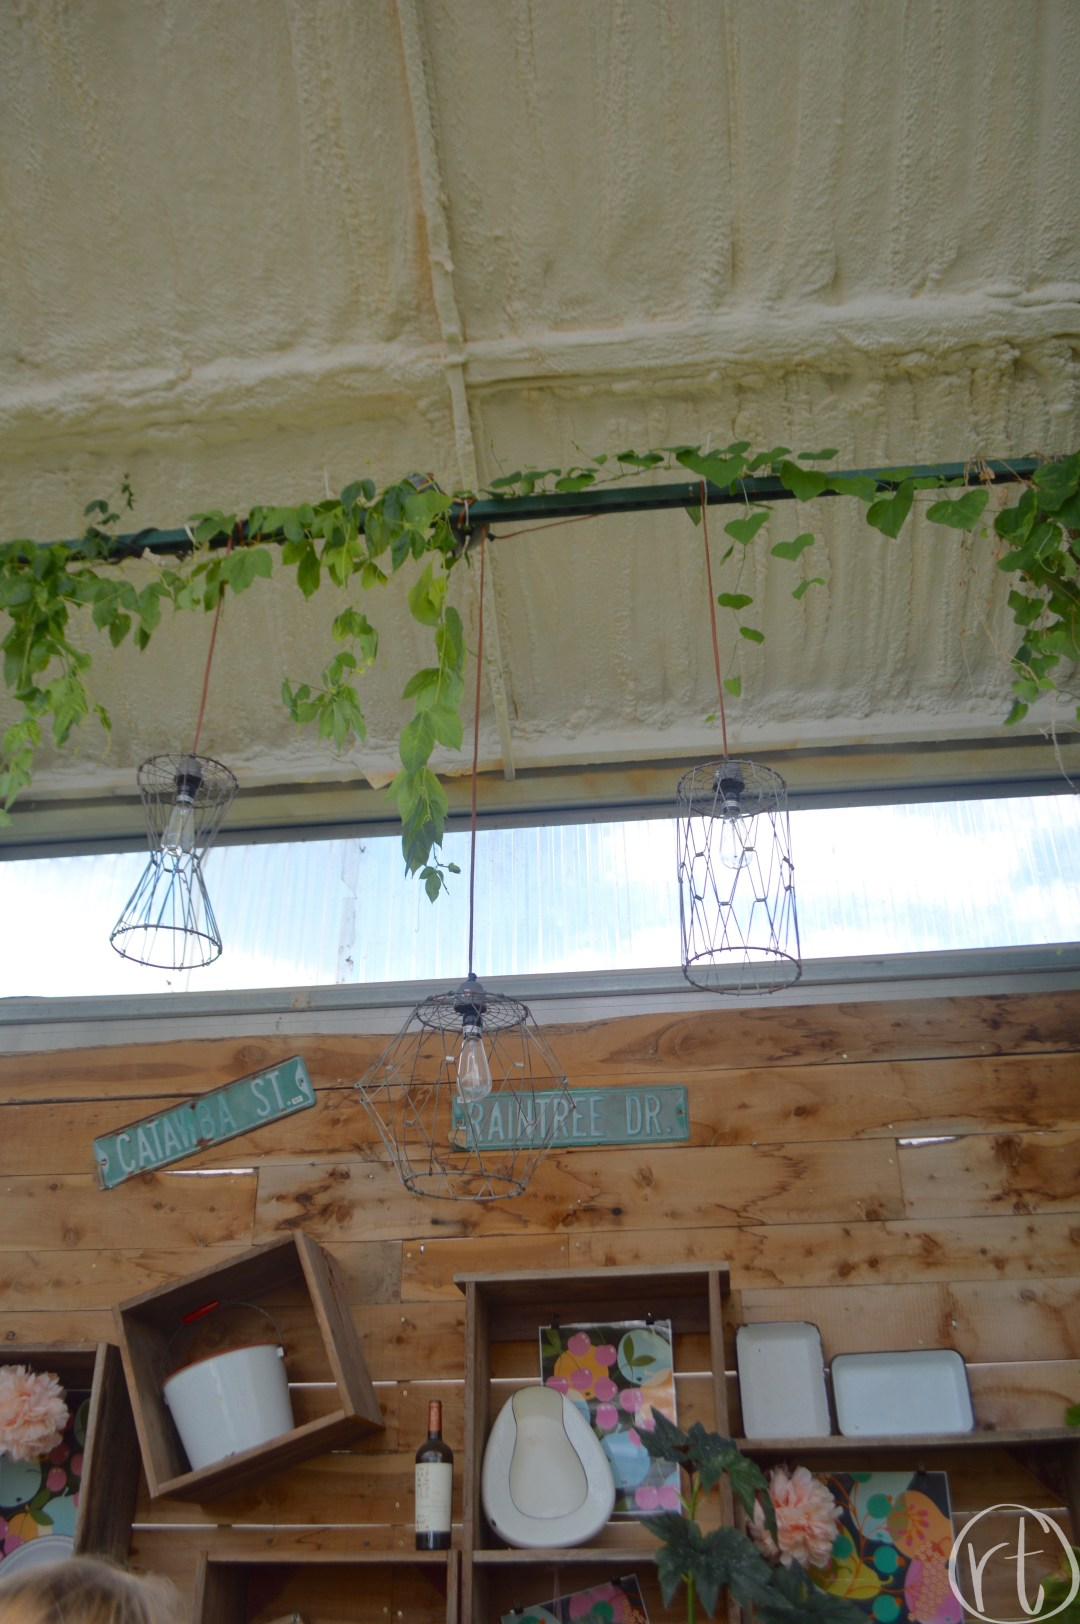 helmis-garden-plants-columbia-missouri-como-rustic-travel